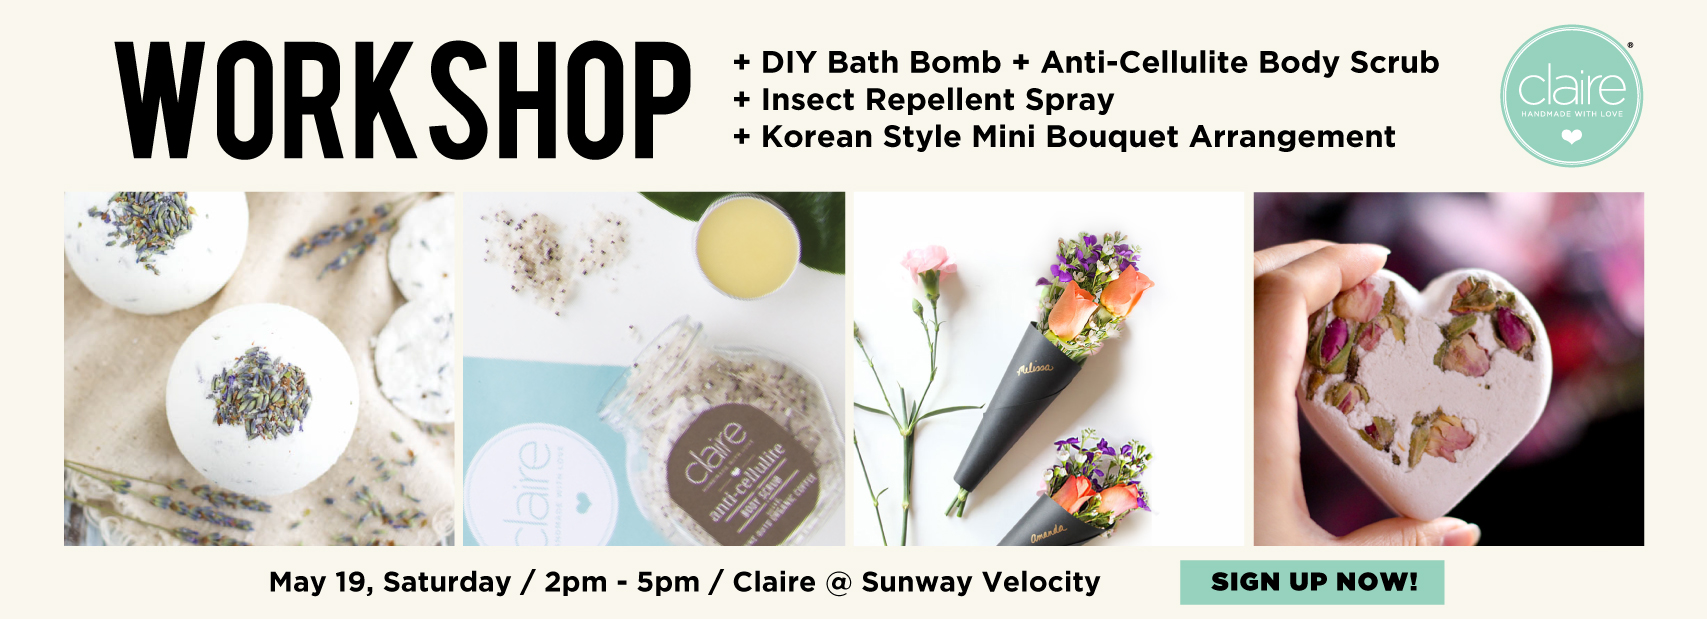 Claire Organics Mother's Day Special DIY Skincare Workshop